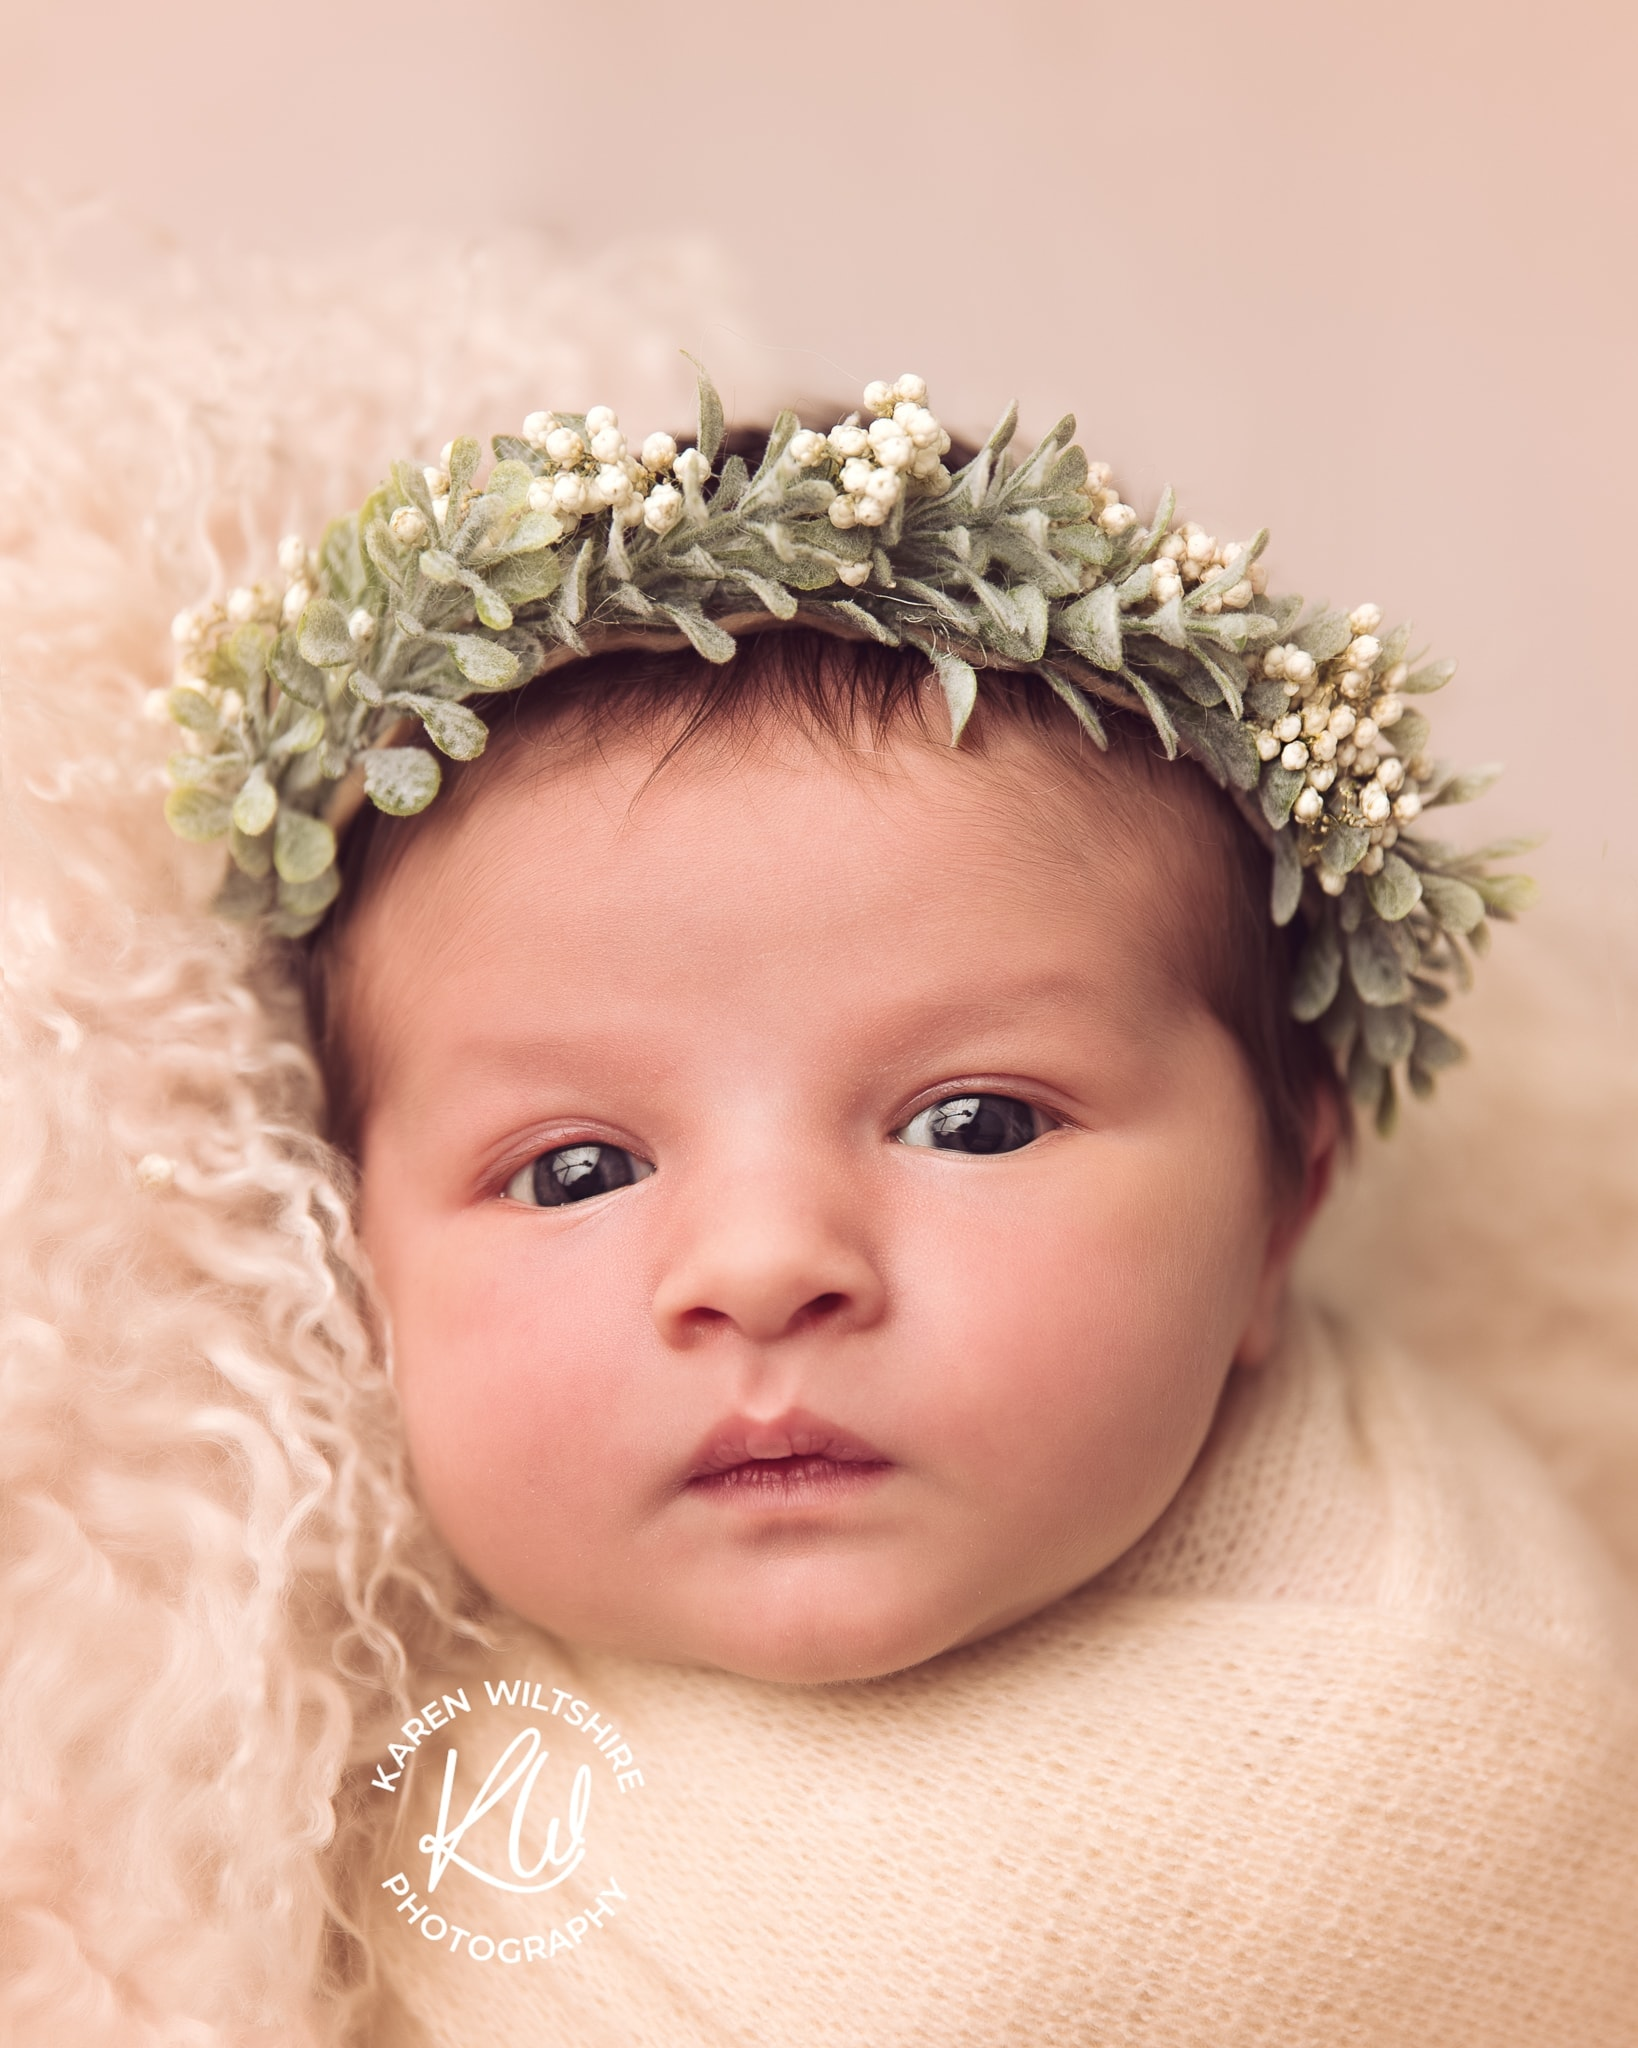 wide awake newborn Baby in headband